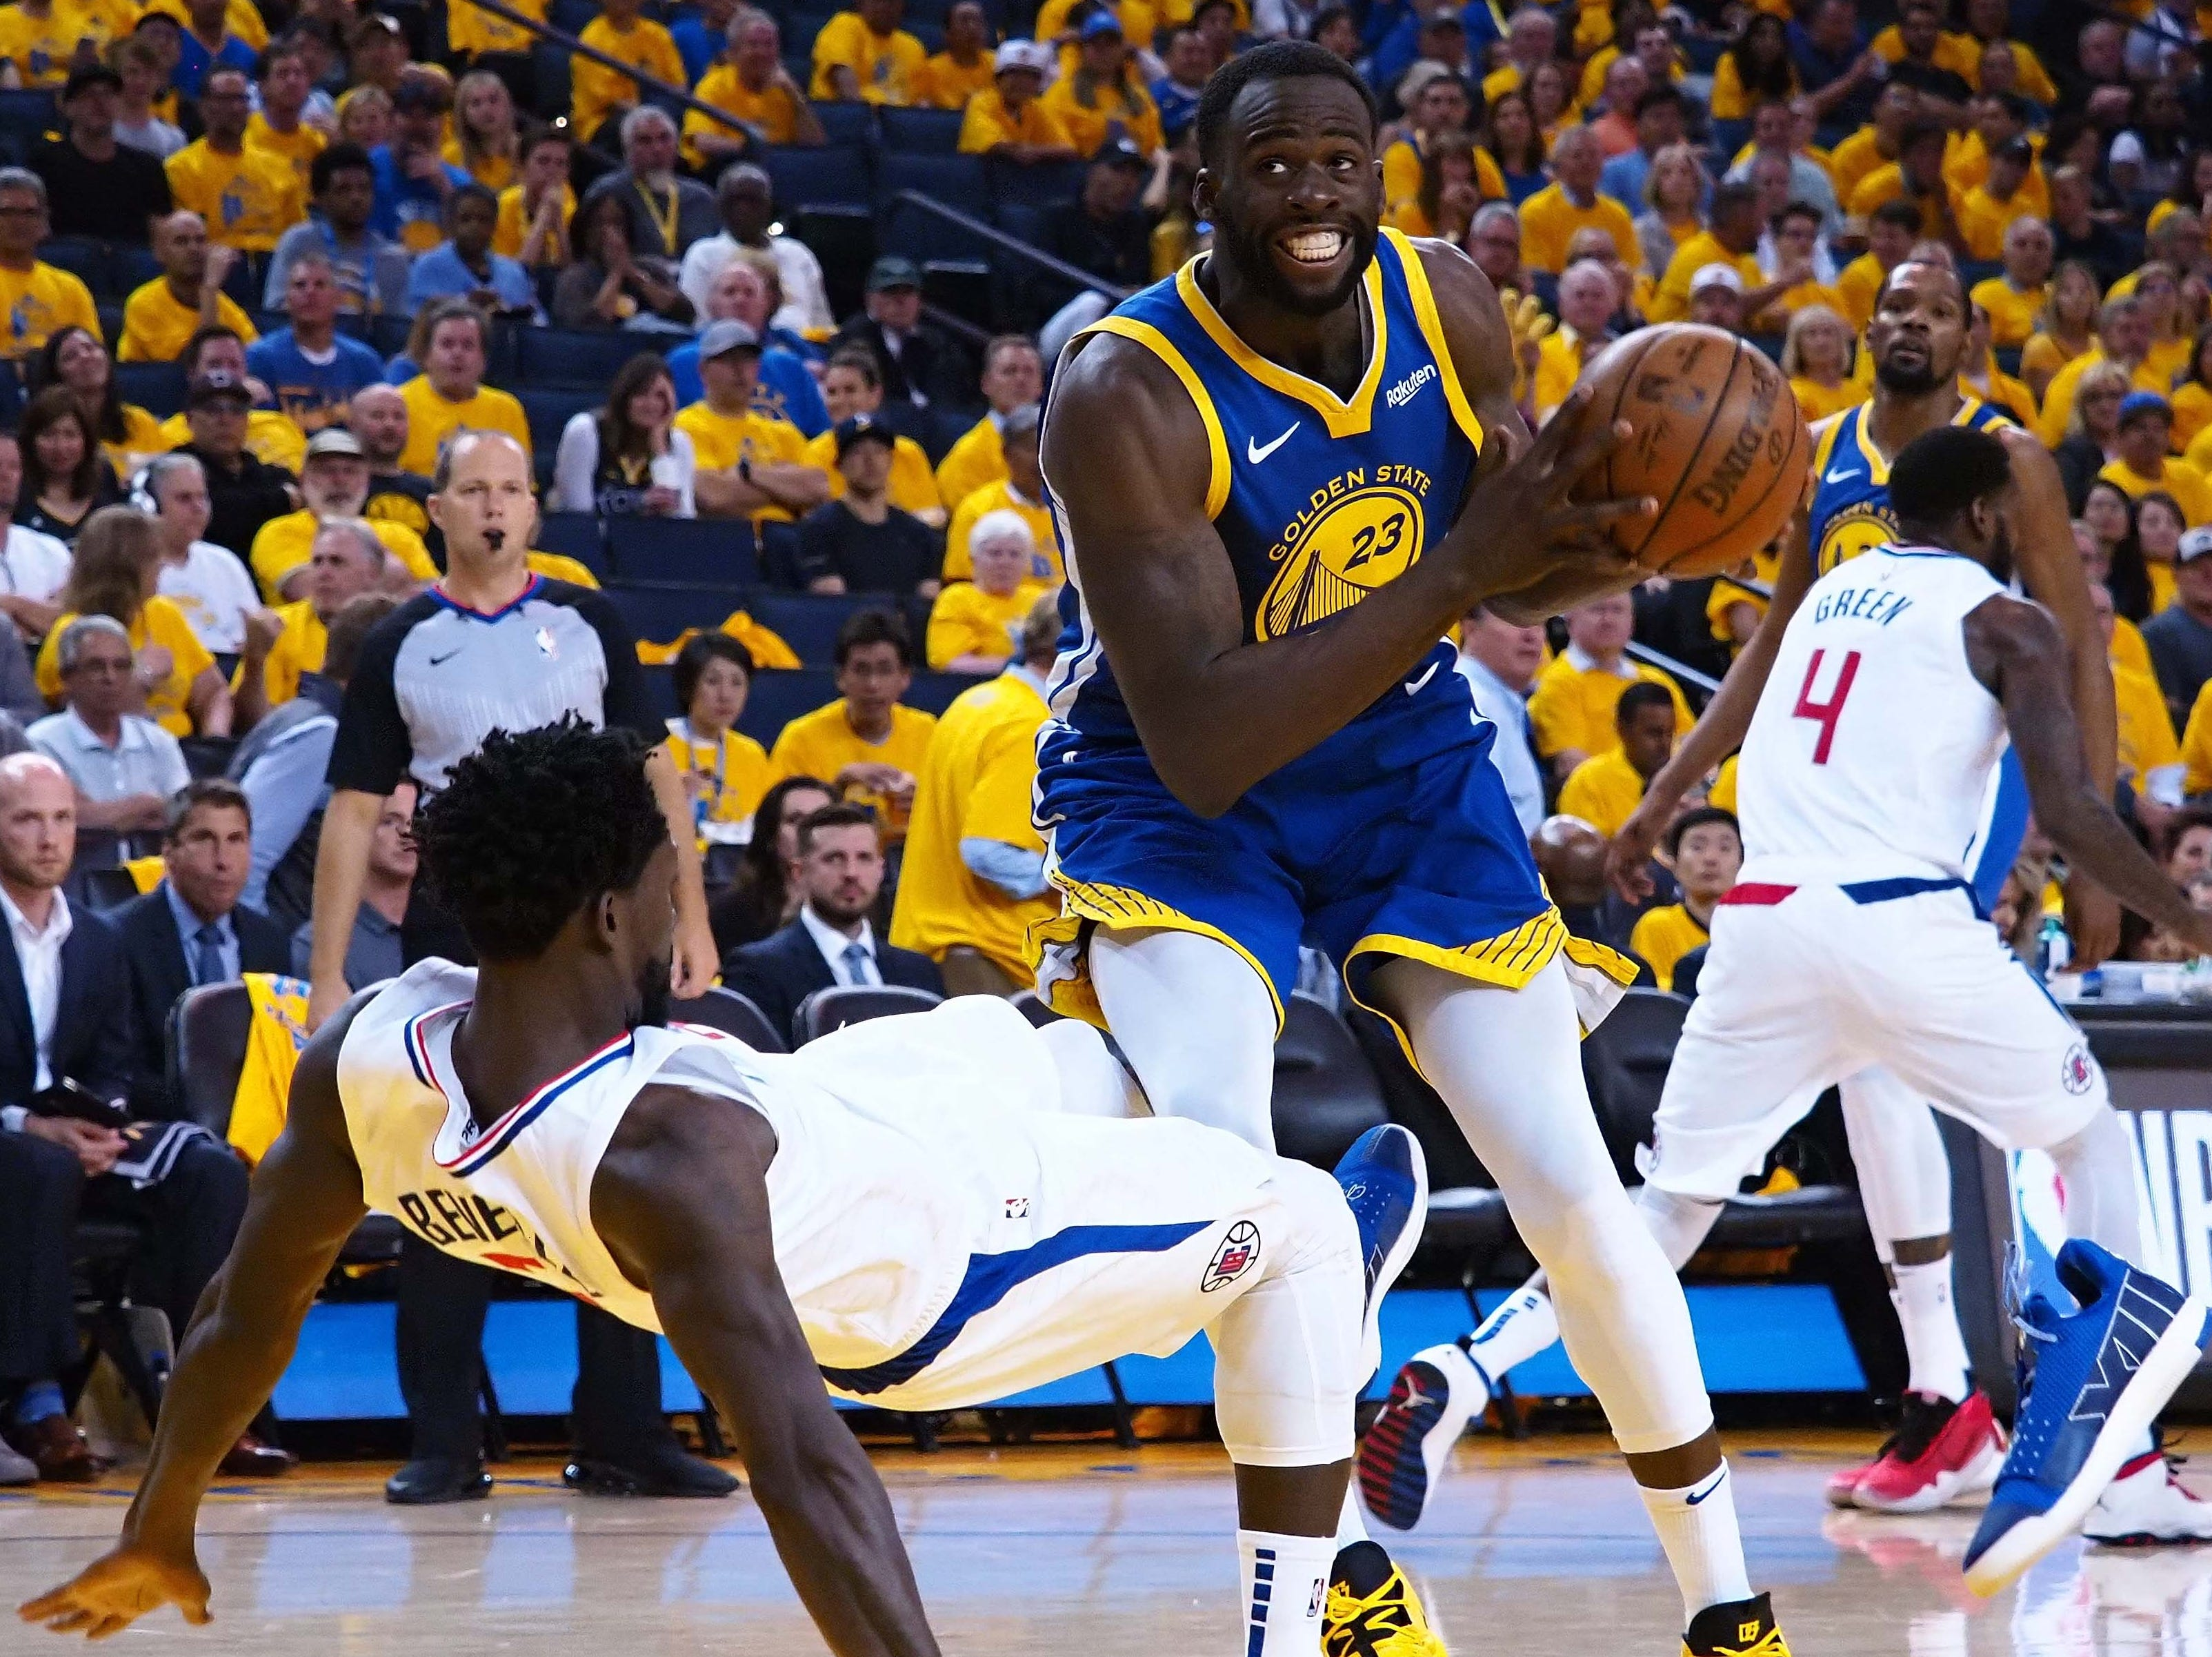 April 24: Clippers defender Patrick Beverley (21) draws a charge against Warriors forward Draymond Green (23) during Game 5.